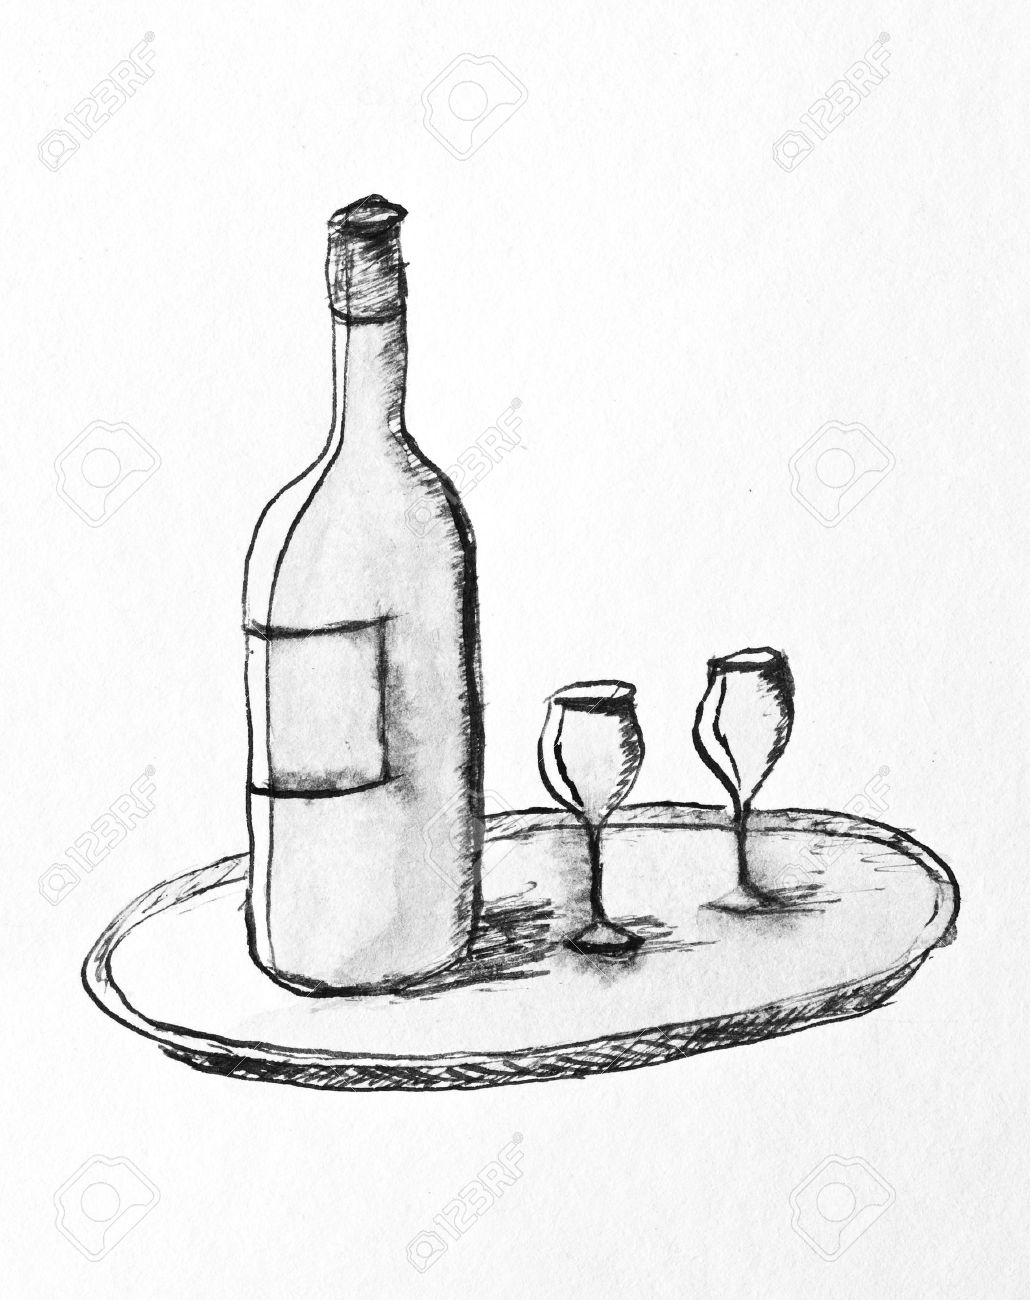 1030x1300 Drawing Of A Wine Bottle Pencil Drawing Of A Wine Bottle And Two